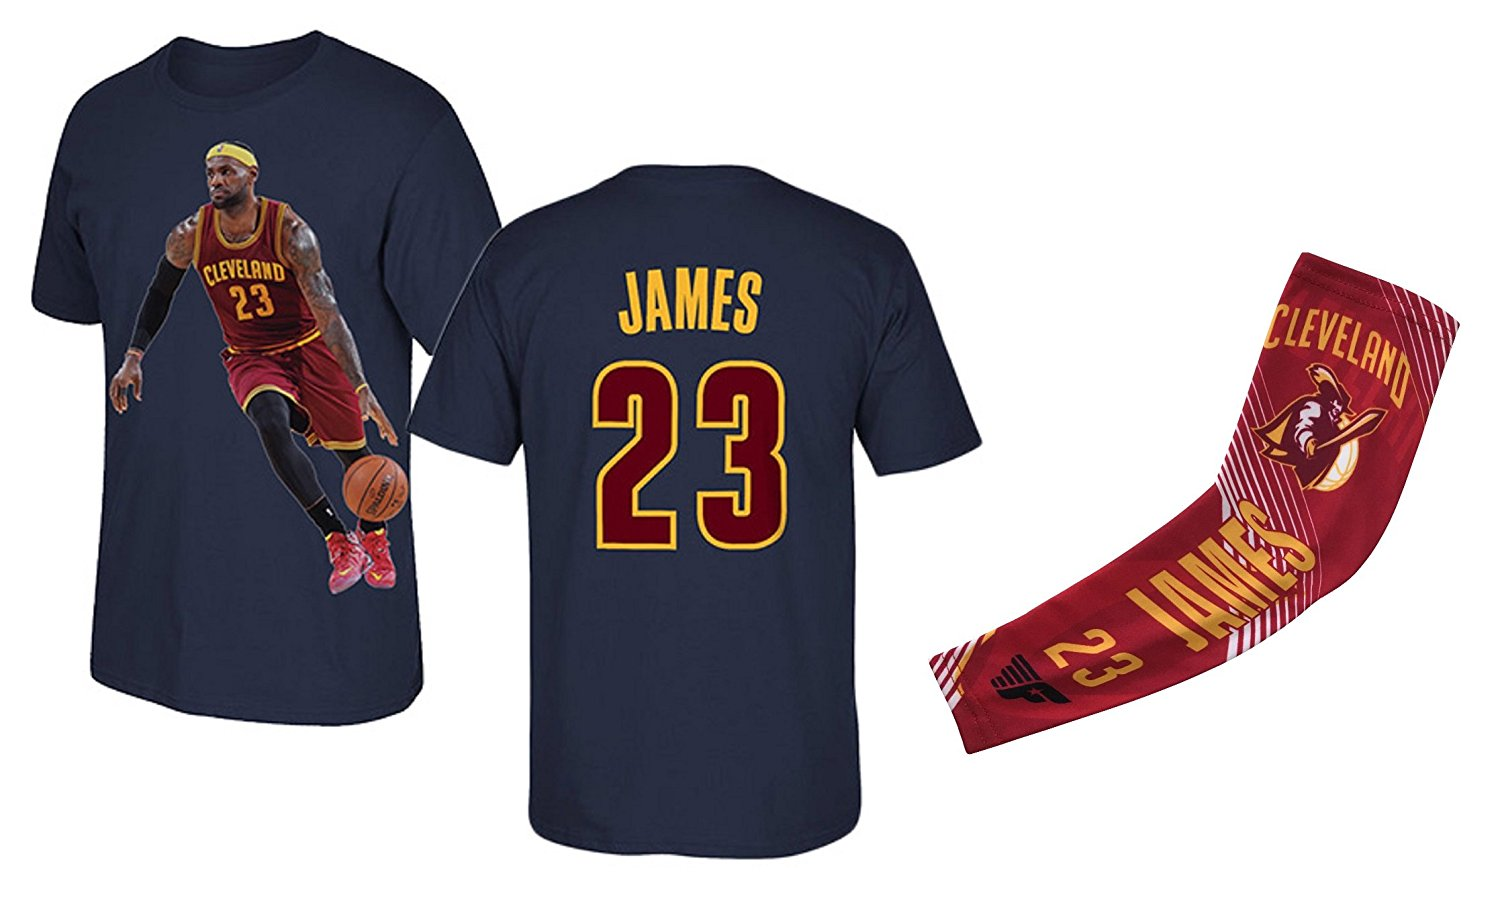 huge discount 9c671 4efeb Cheap Lebron James Jersey Shirt, find Lebron James Jersey ...